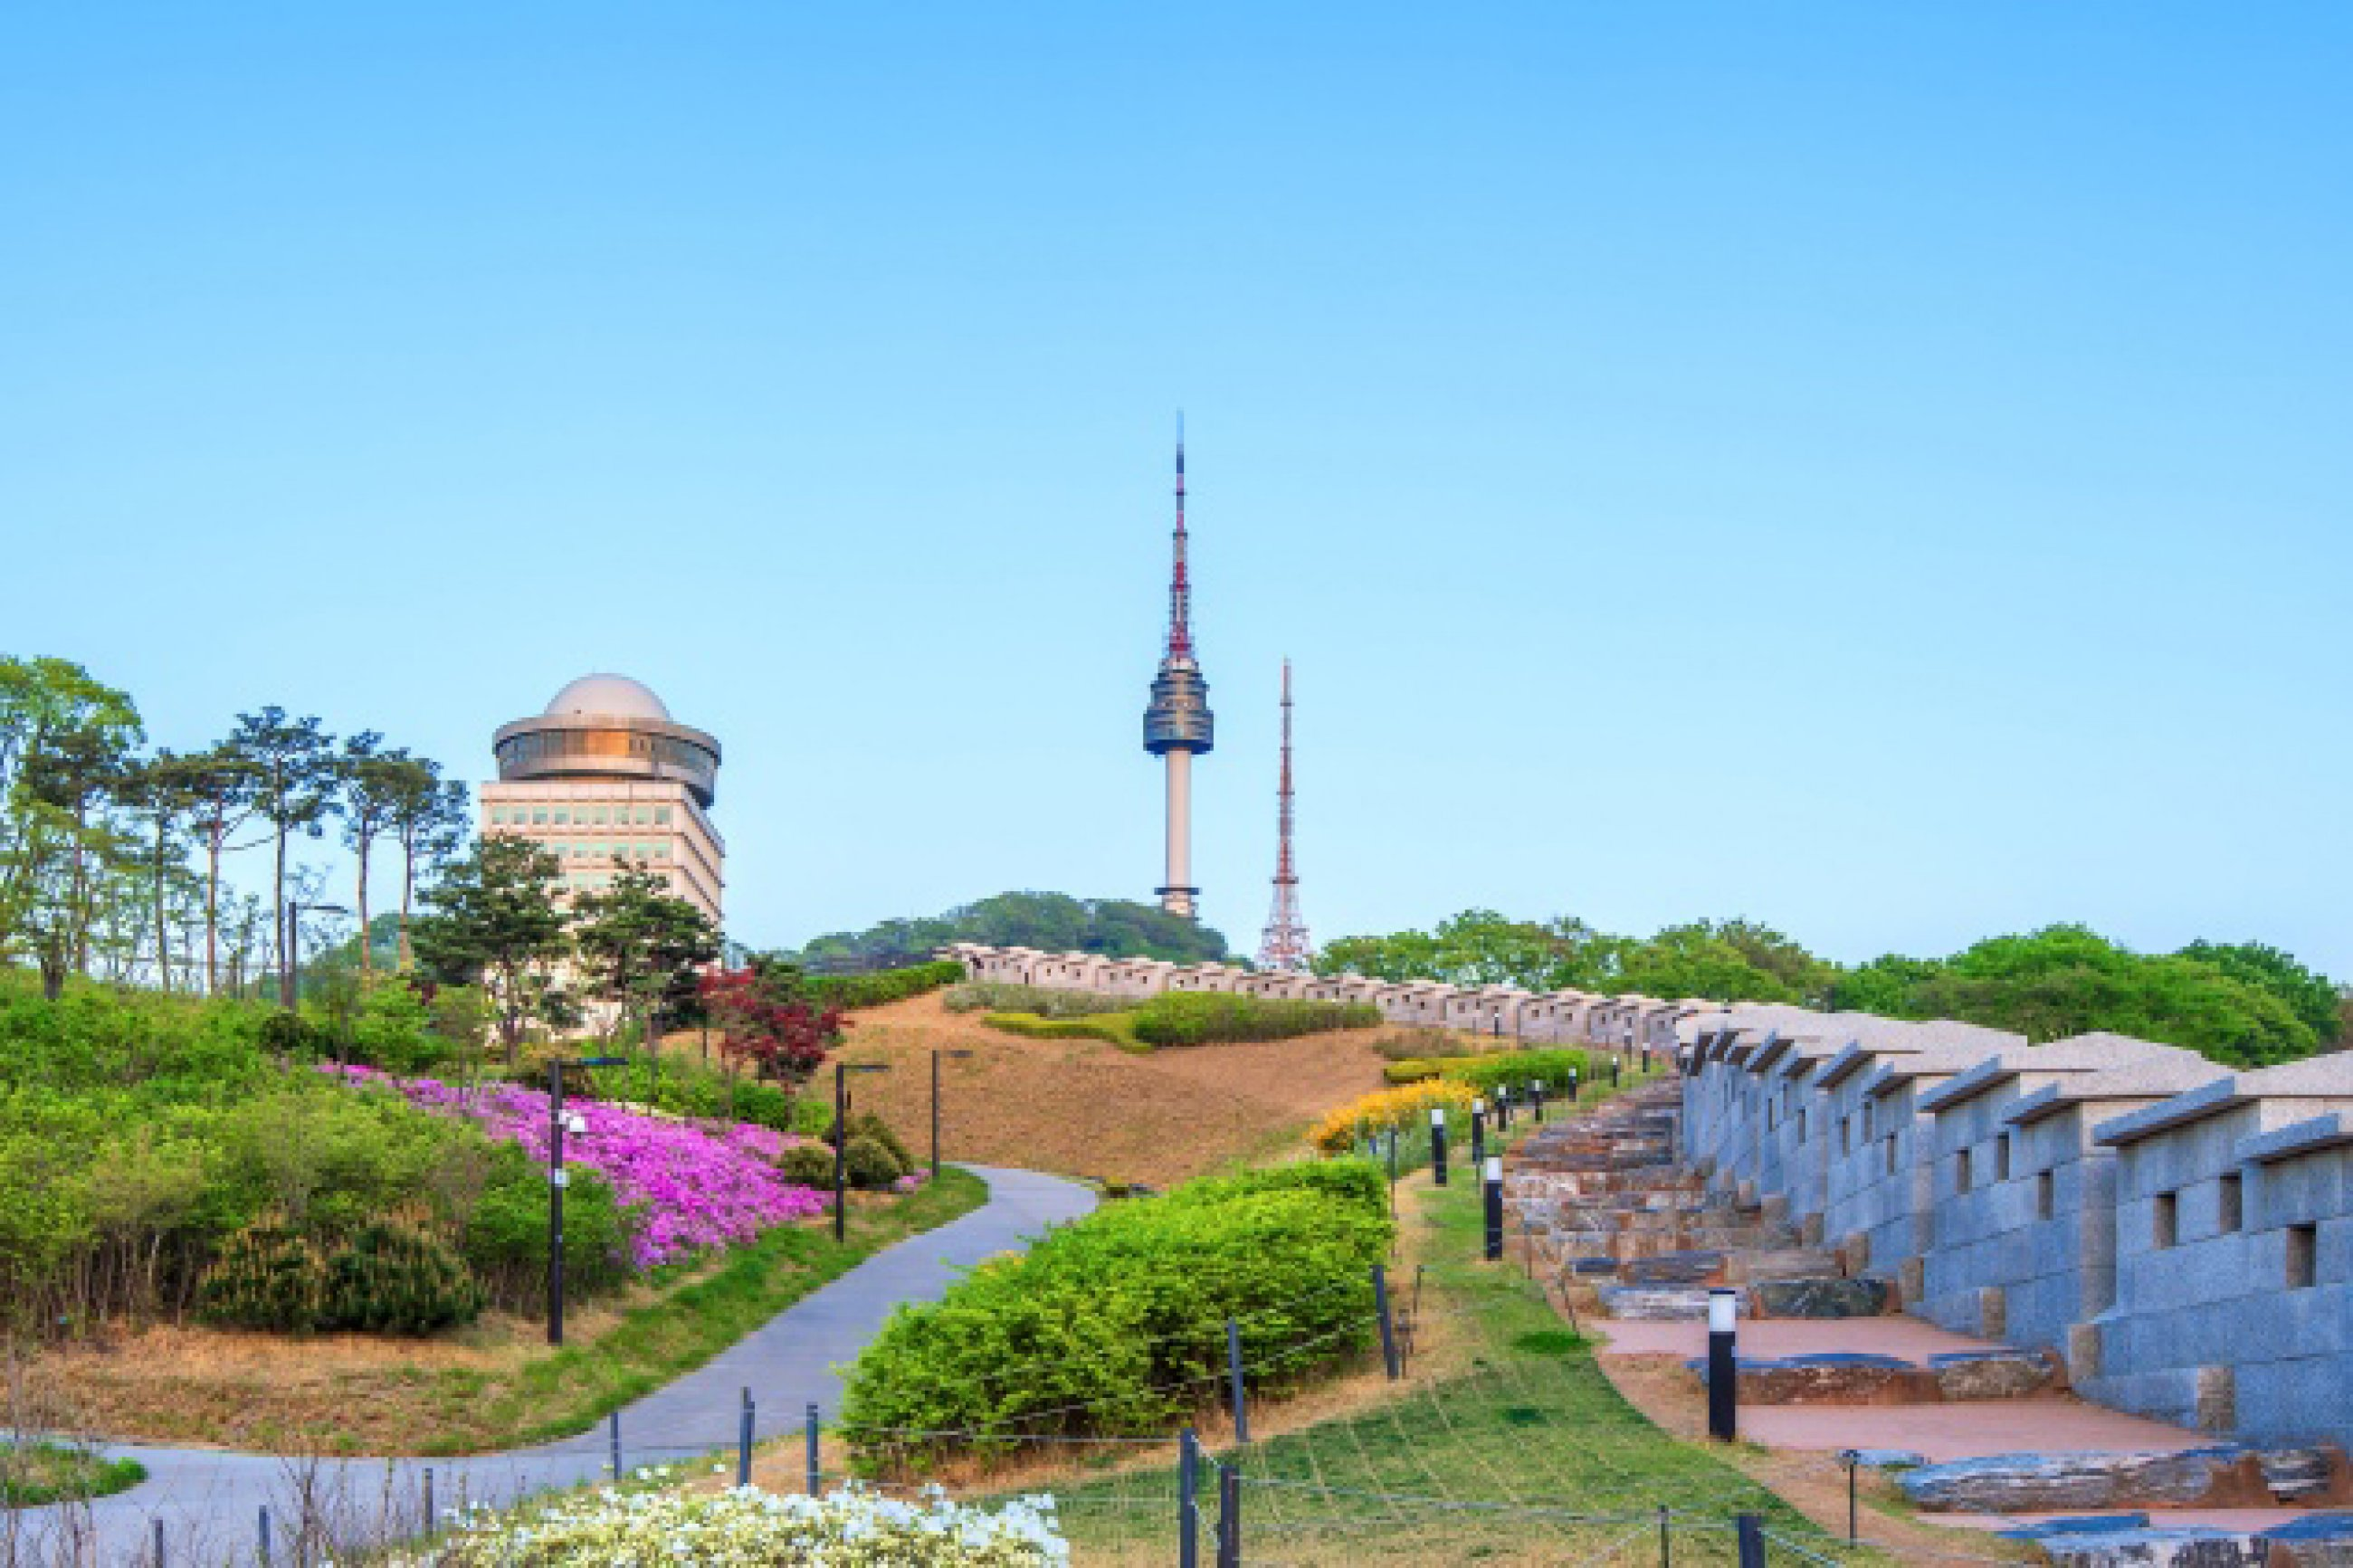 https://bubo.sk/uploads/galleries/7452/seoul-tower-located-on-namsan-mountain-in-central-seoul-south-korea.jpg